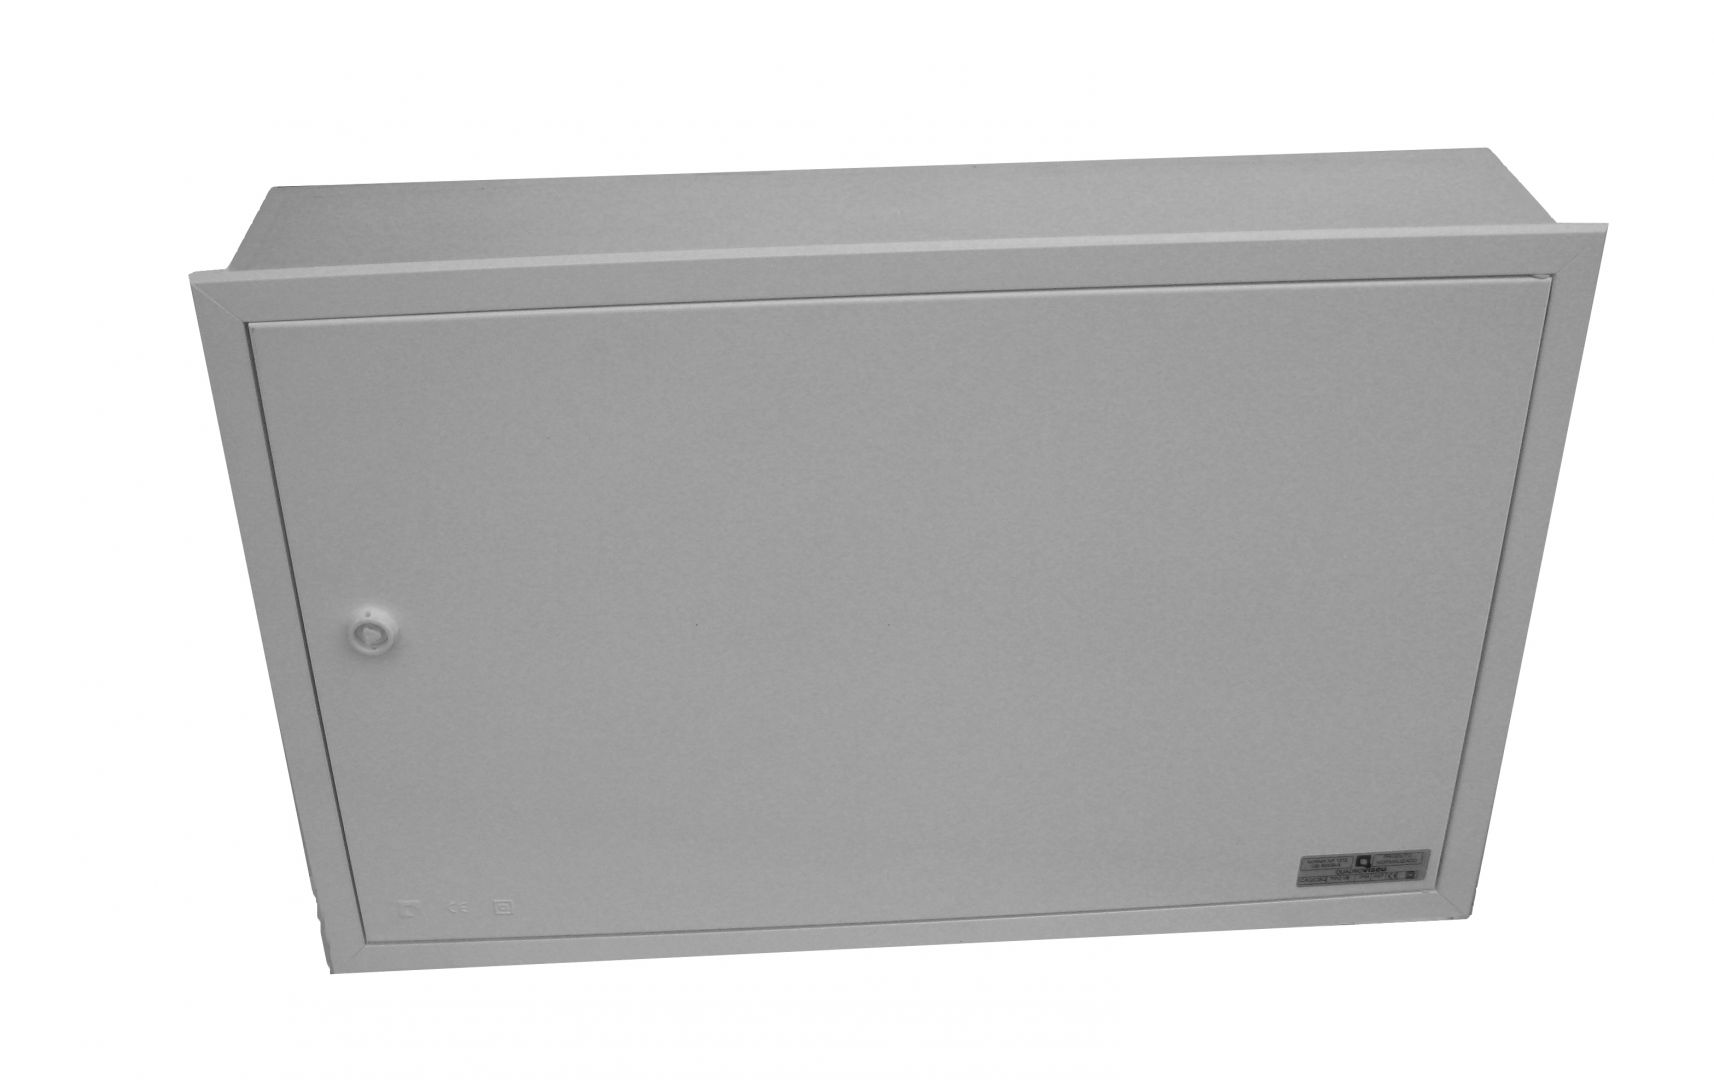 EMPTY BUILT-IN VISBOX BOX WITH DOOR AND FRAME 320X250X130